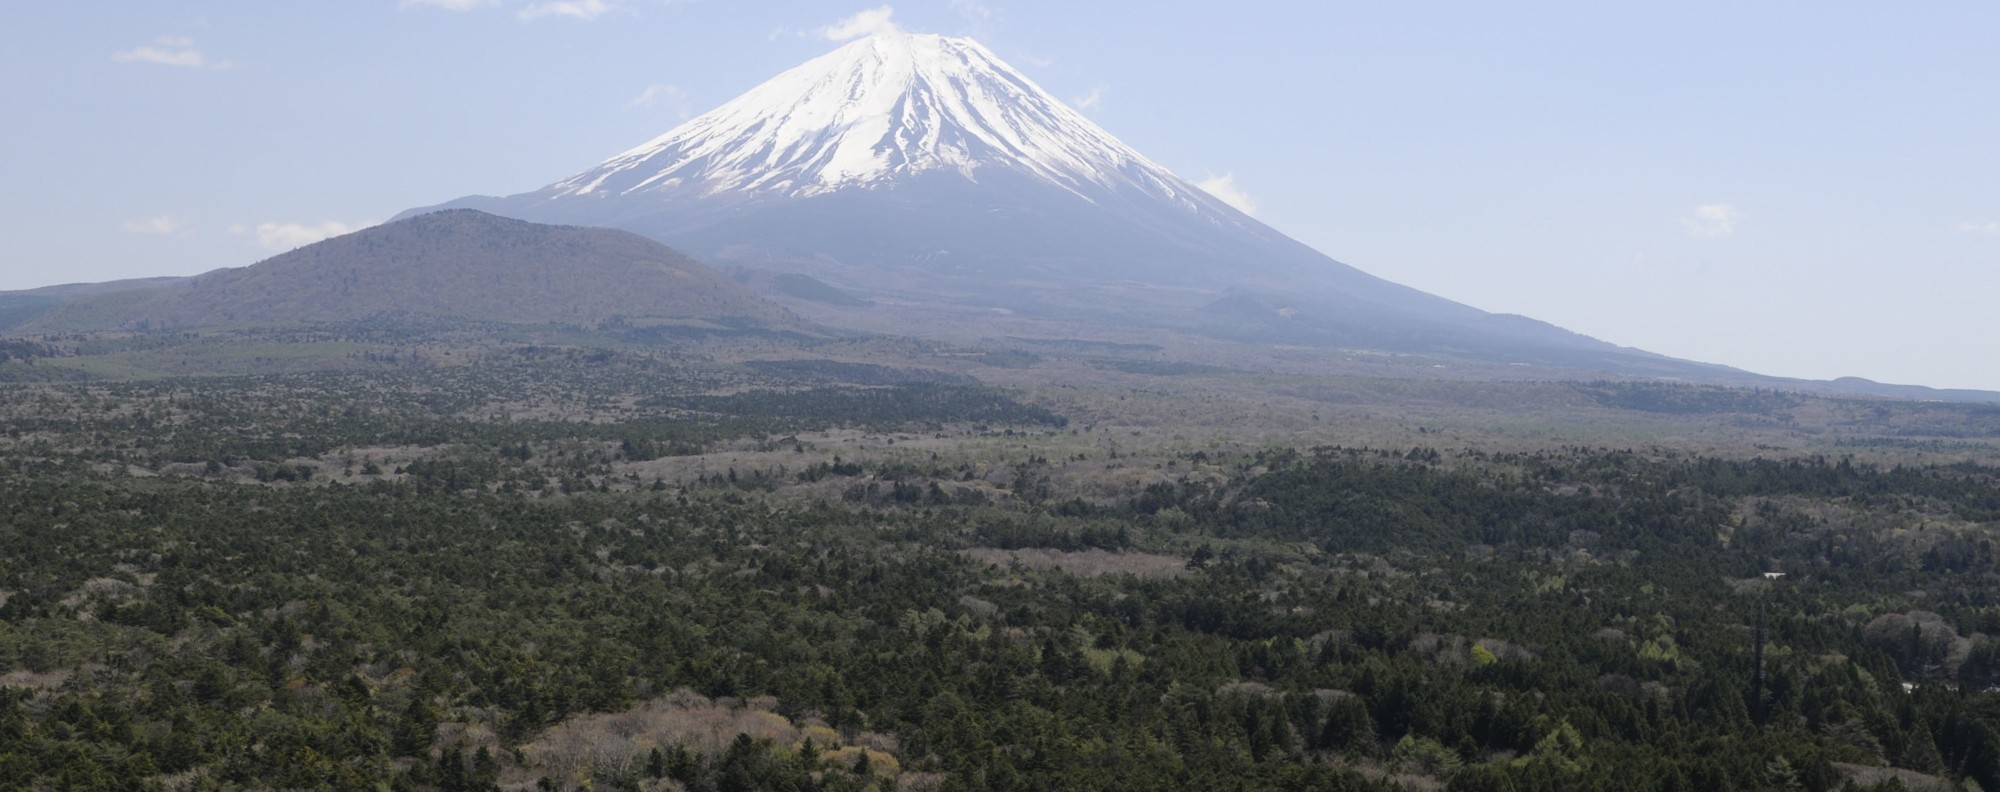 Mount Fuji and Aokigahara, the 'suicide forest'. Photo: Kyodo